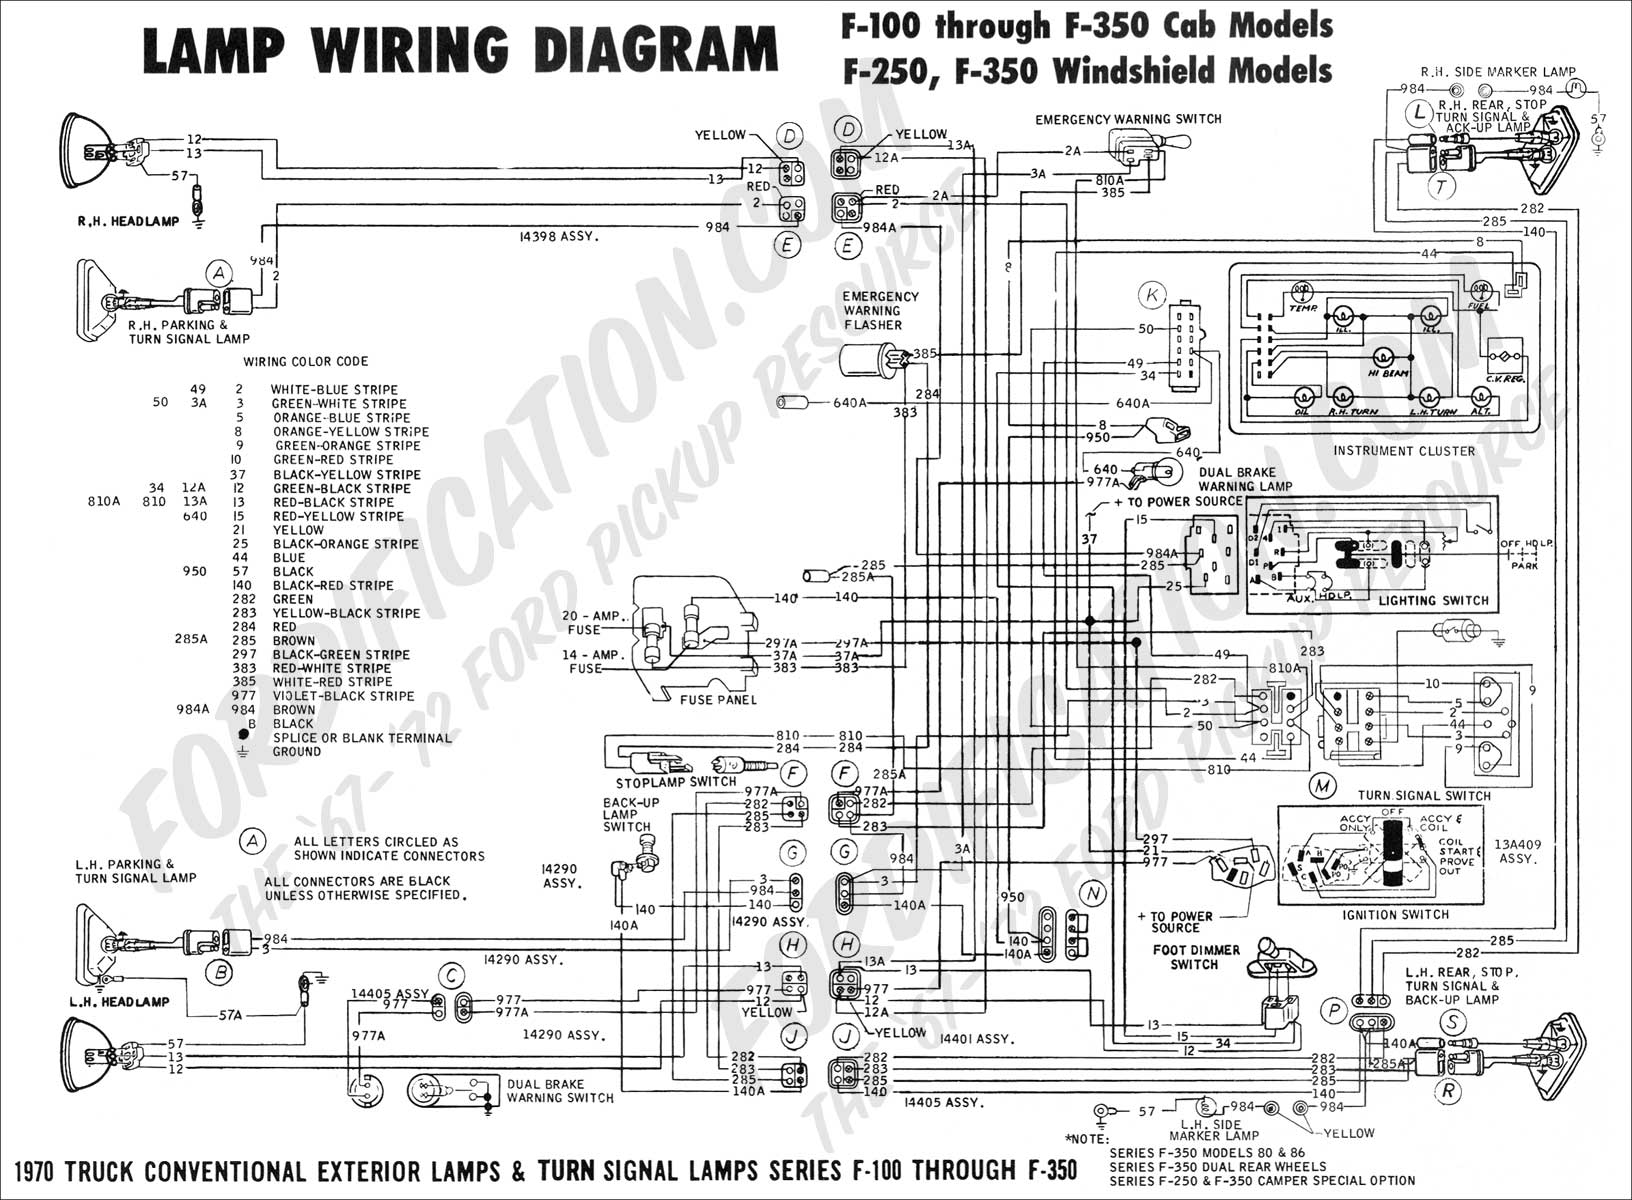 wiring diagram_70ext lights01?resize=665%2C489 ford f150 right rear taillight is out where is fuse and how 1999 ford f150 turn signal wiring diagram at panicattacktreatment.co